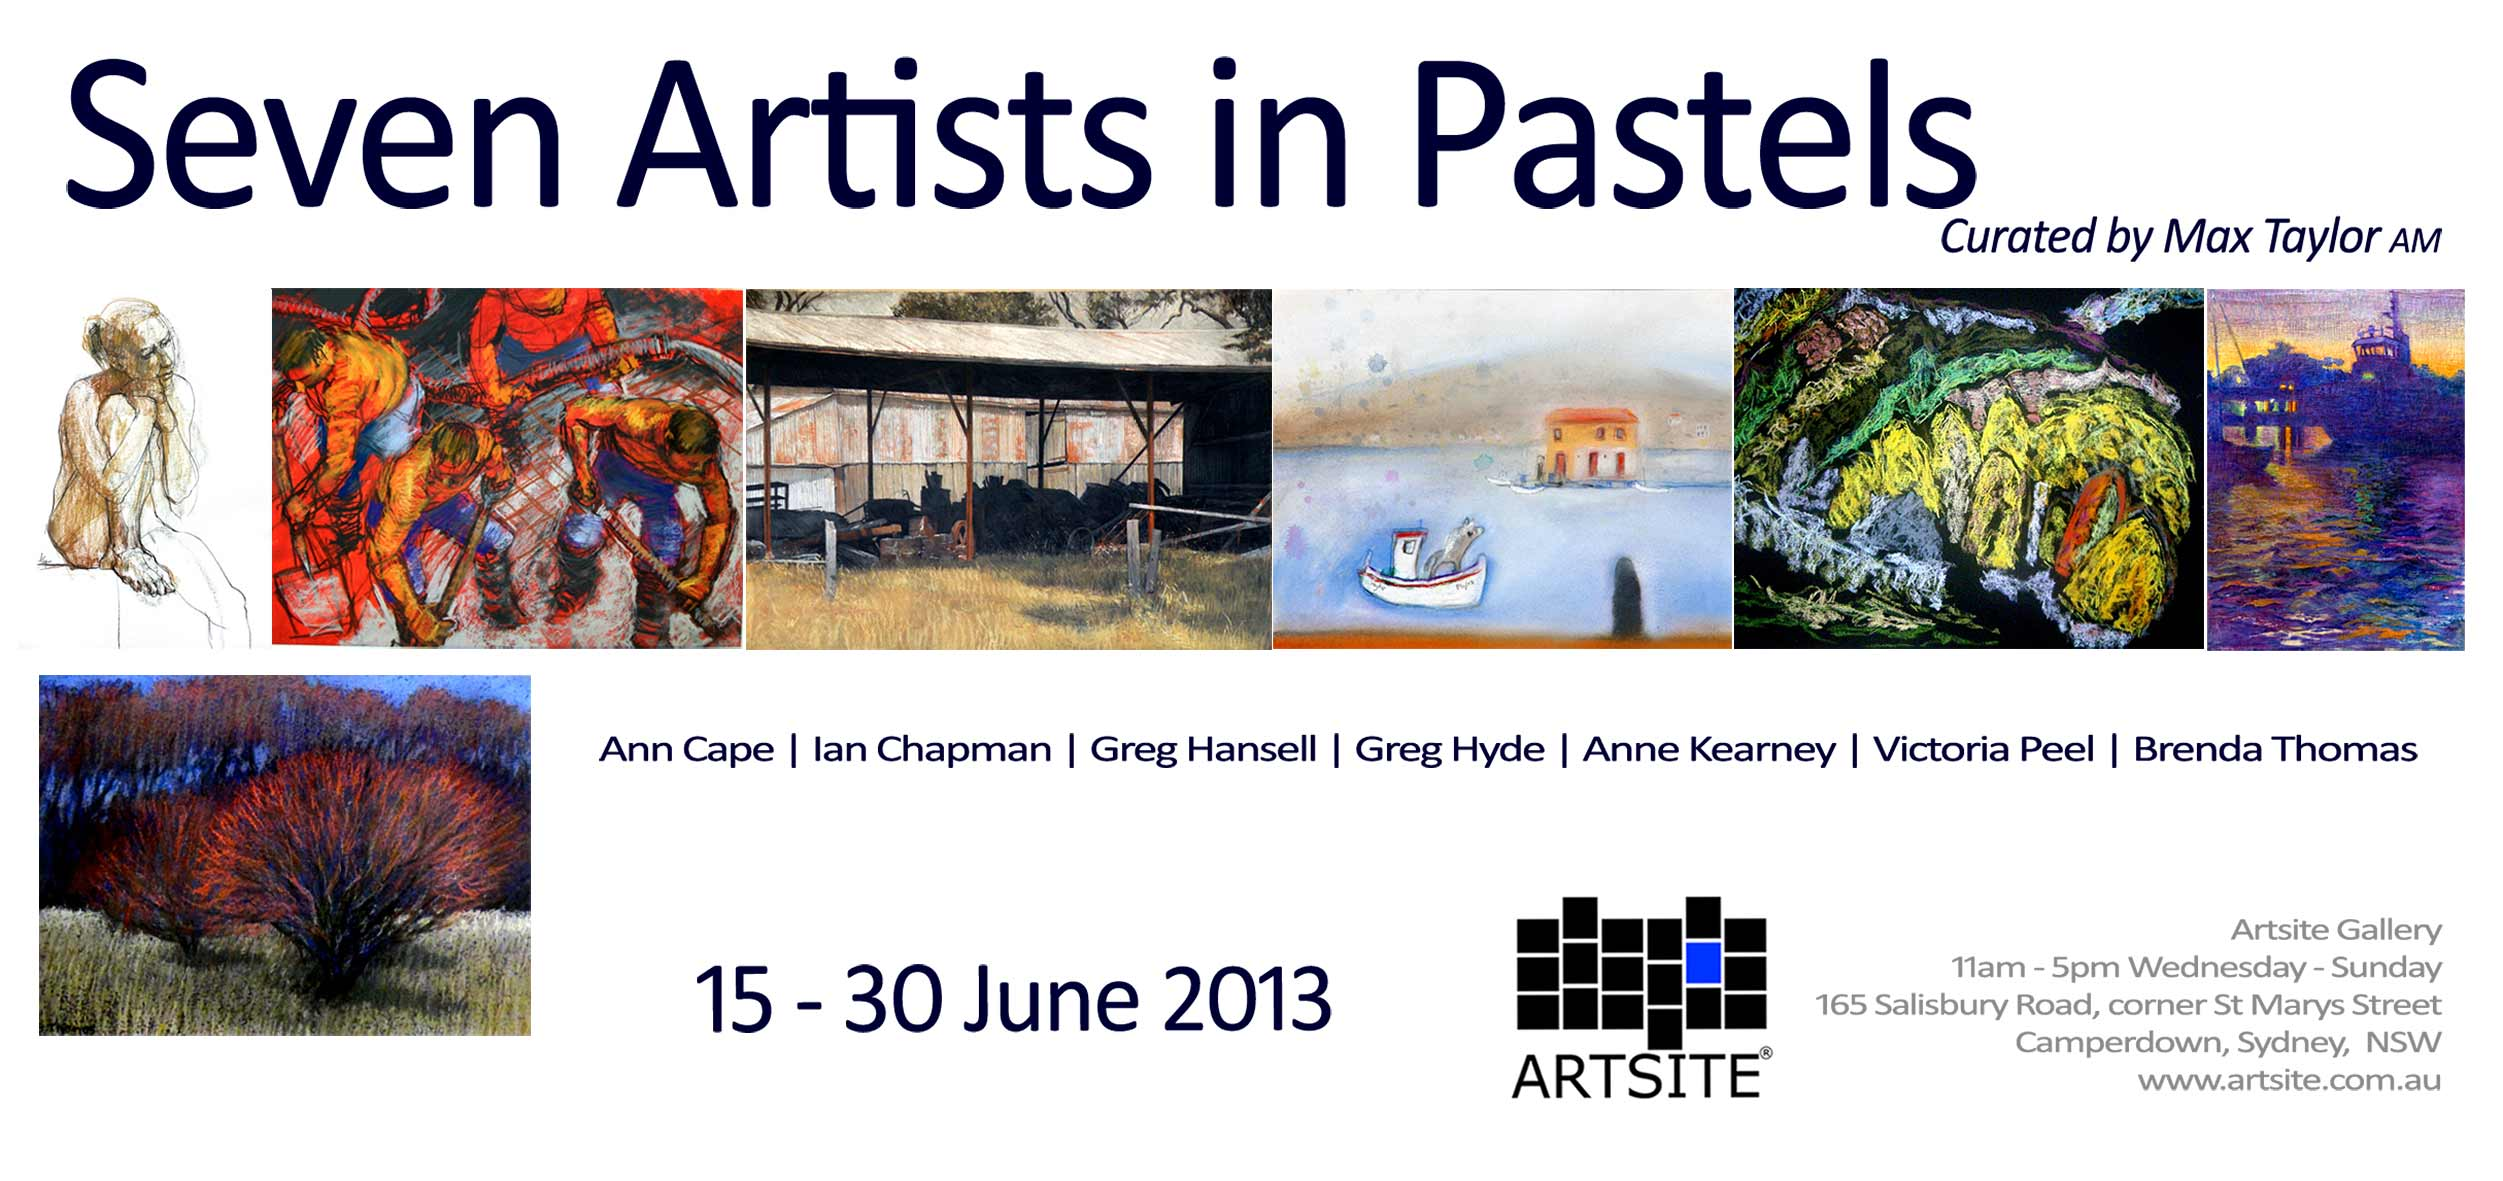 View Exhibition at Artsite Gallery.15-30 June 2013: Seven Artists In Pastel, Curated By Max Taylor AM with Ann Cape | Ian Chapman | Greg Hansell | Greg Hyde | Anne Kearney | Victoria Peel | Brenda Thomas